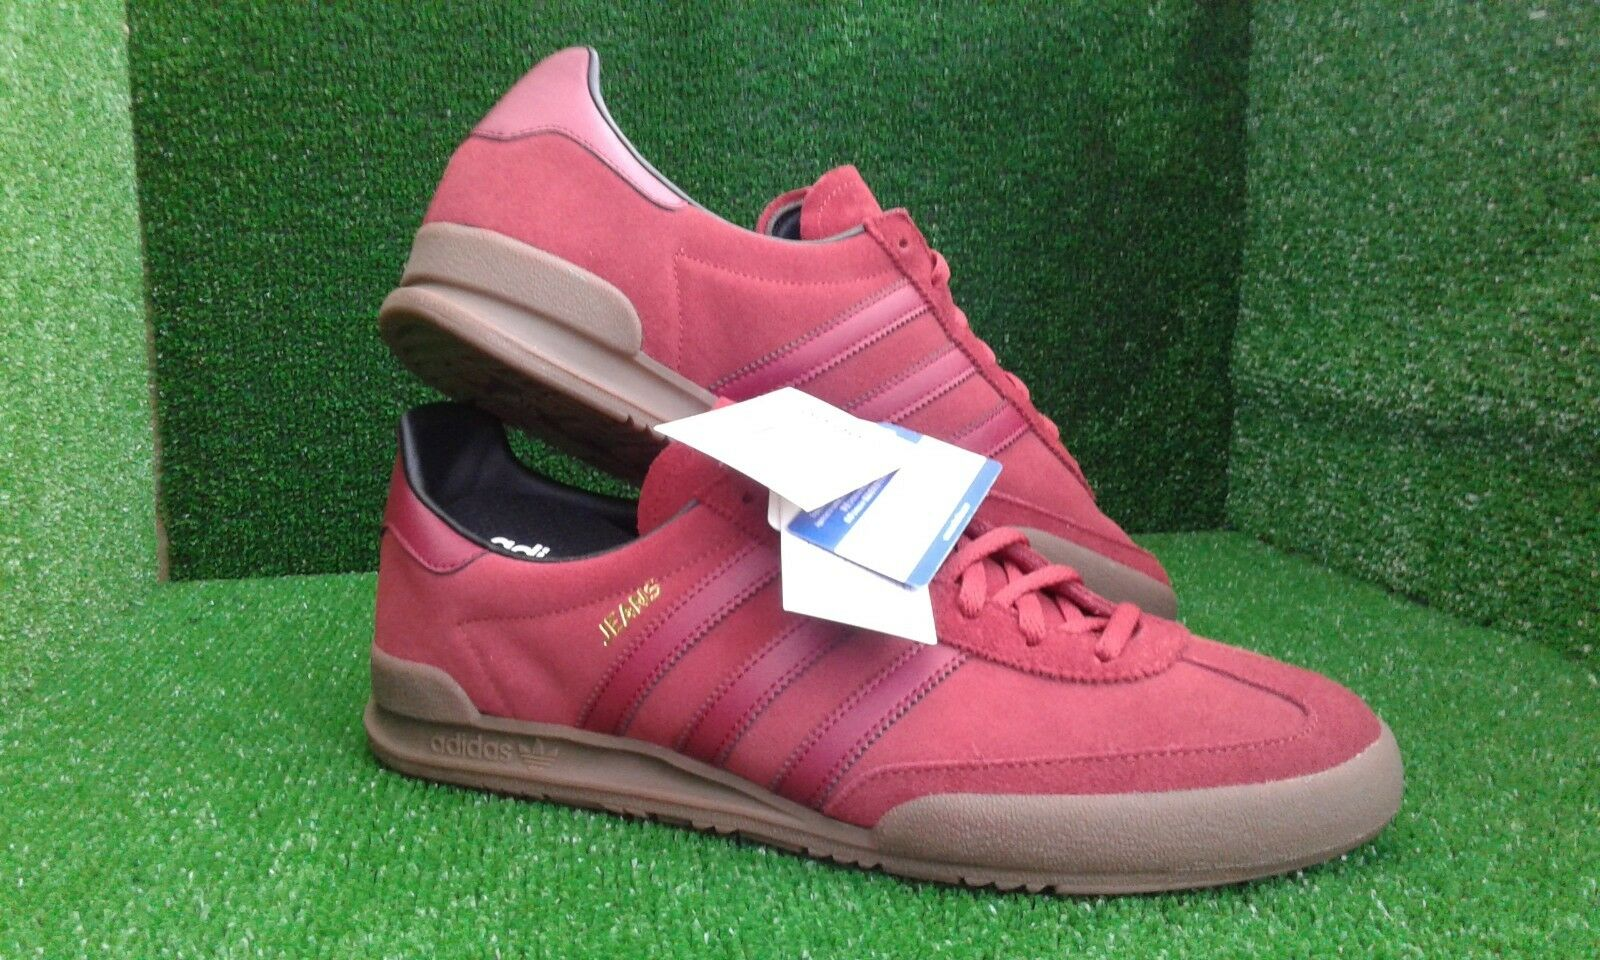 Adidas Jeans mk2 mystery red suede visit ninety two trimm star vhs milan